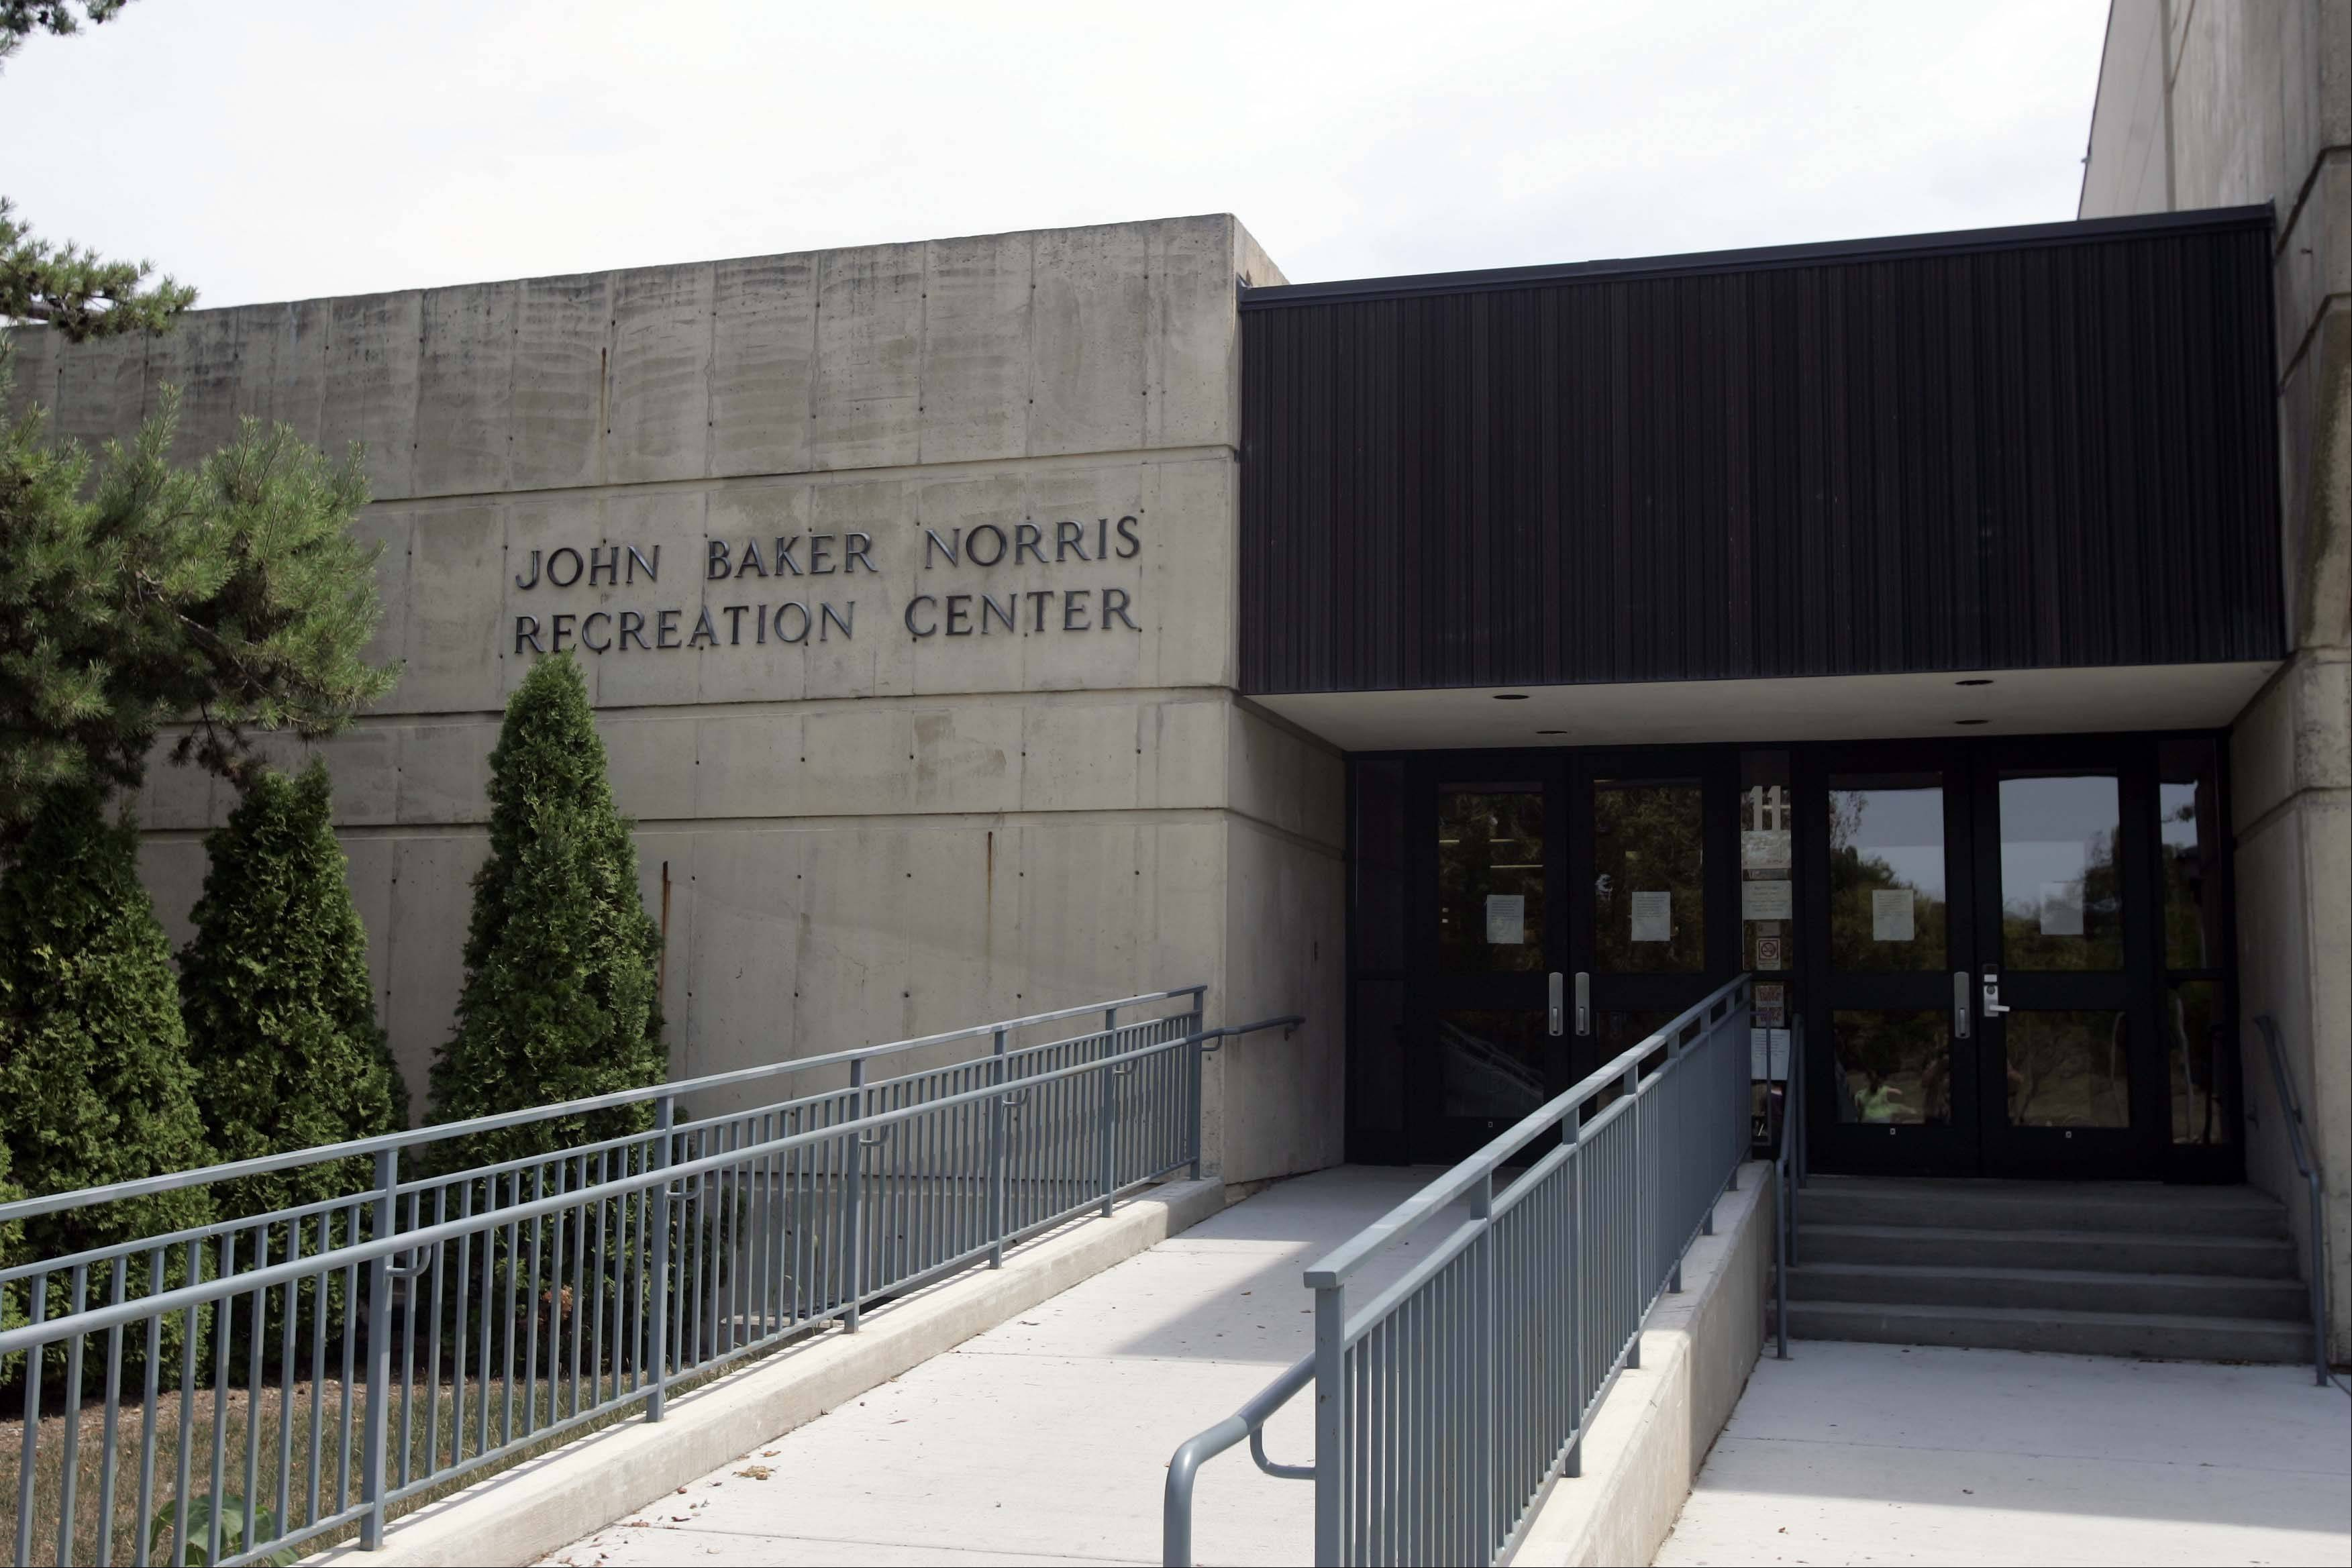 Mold was found in the north wall of racquetball court #3, which was part of an addition in 1981 to the original 1974 building. The rec center is connected to St. Charles East High School, which was the site of a major mold problem in 2001.